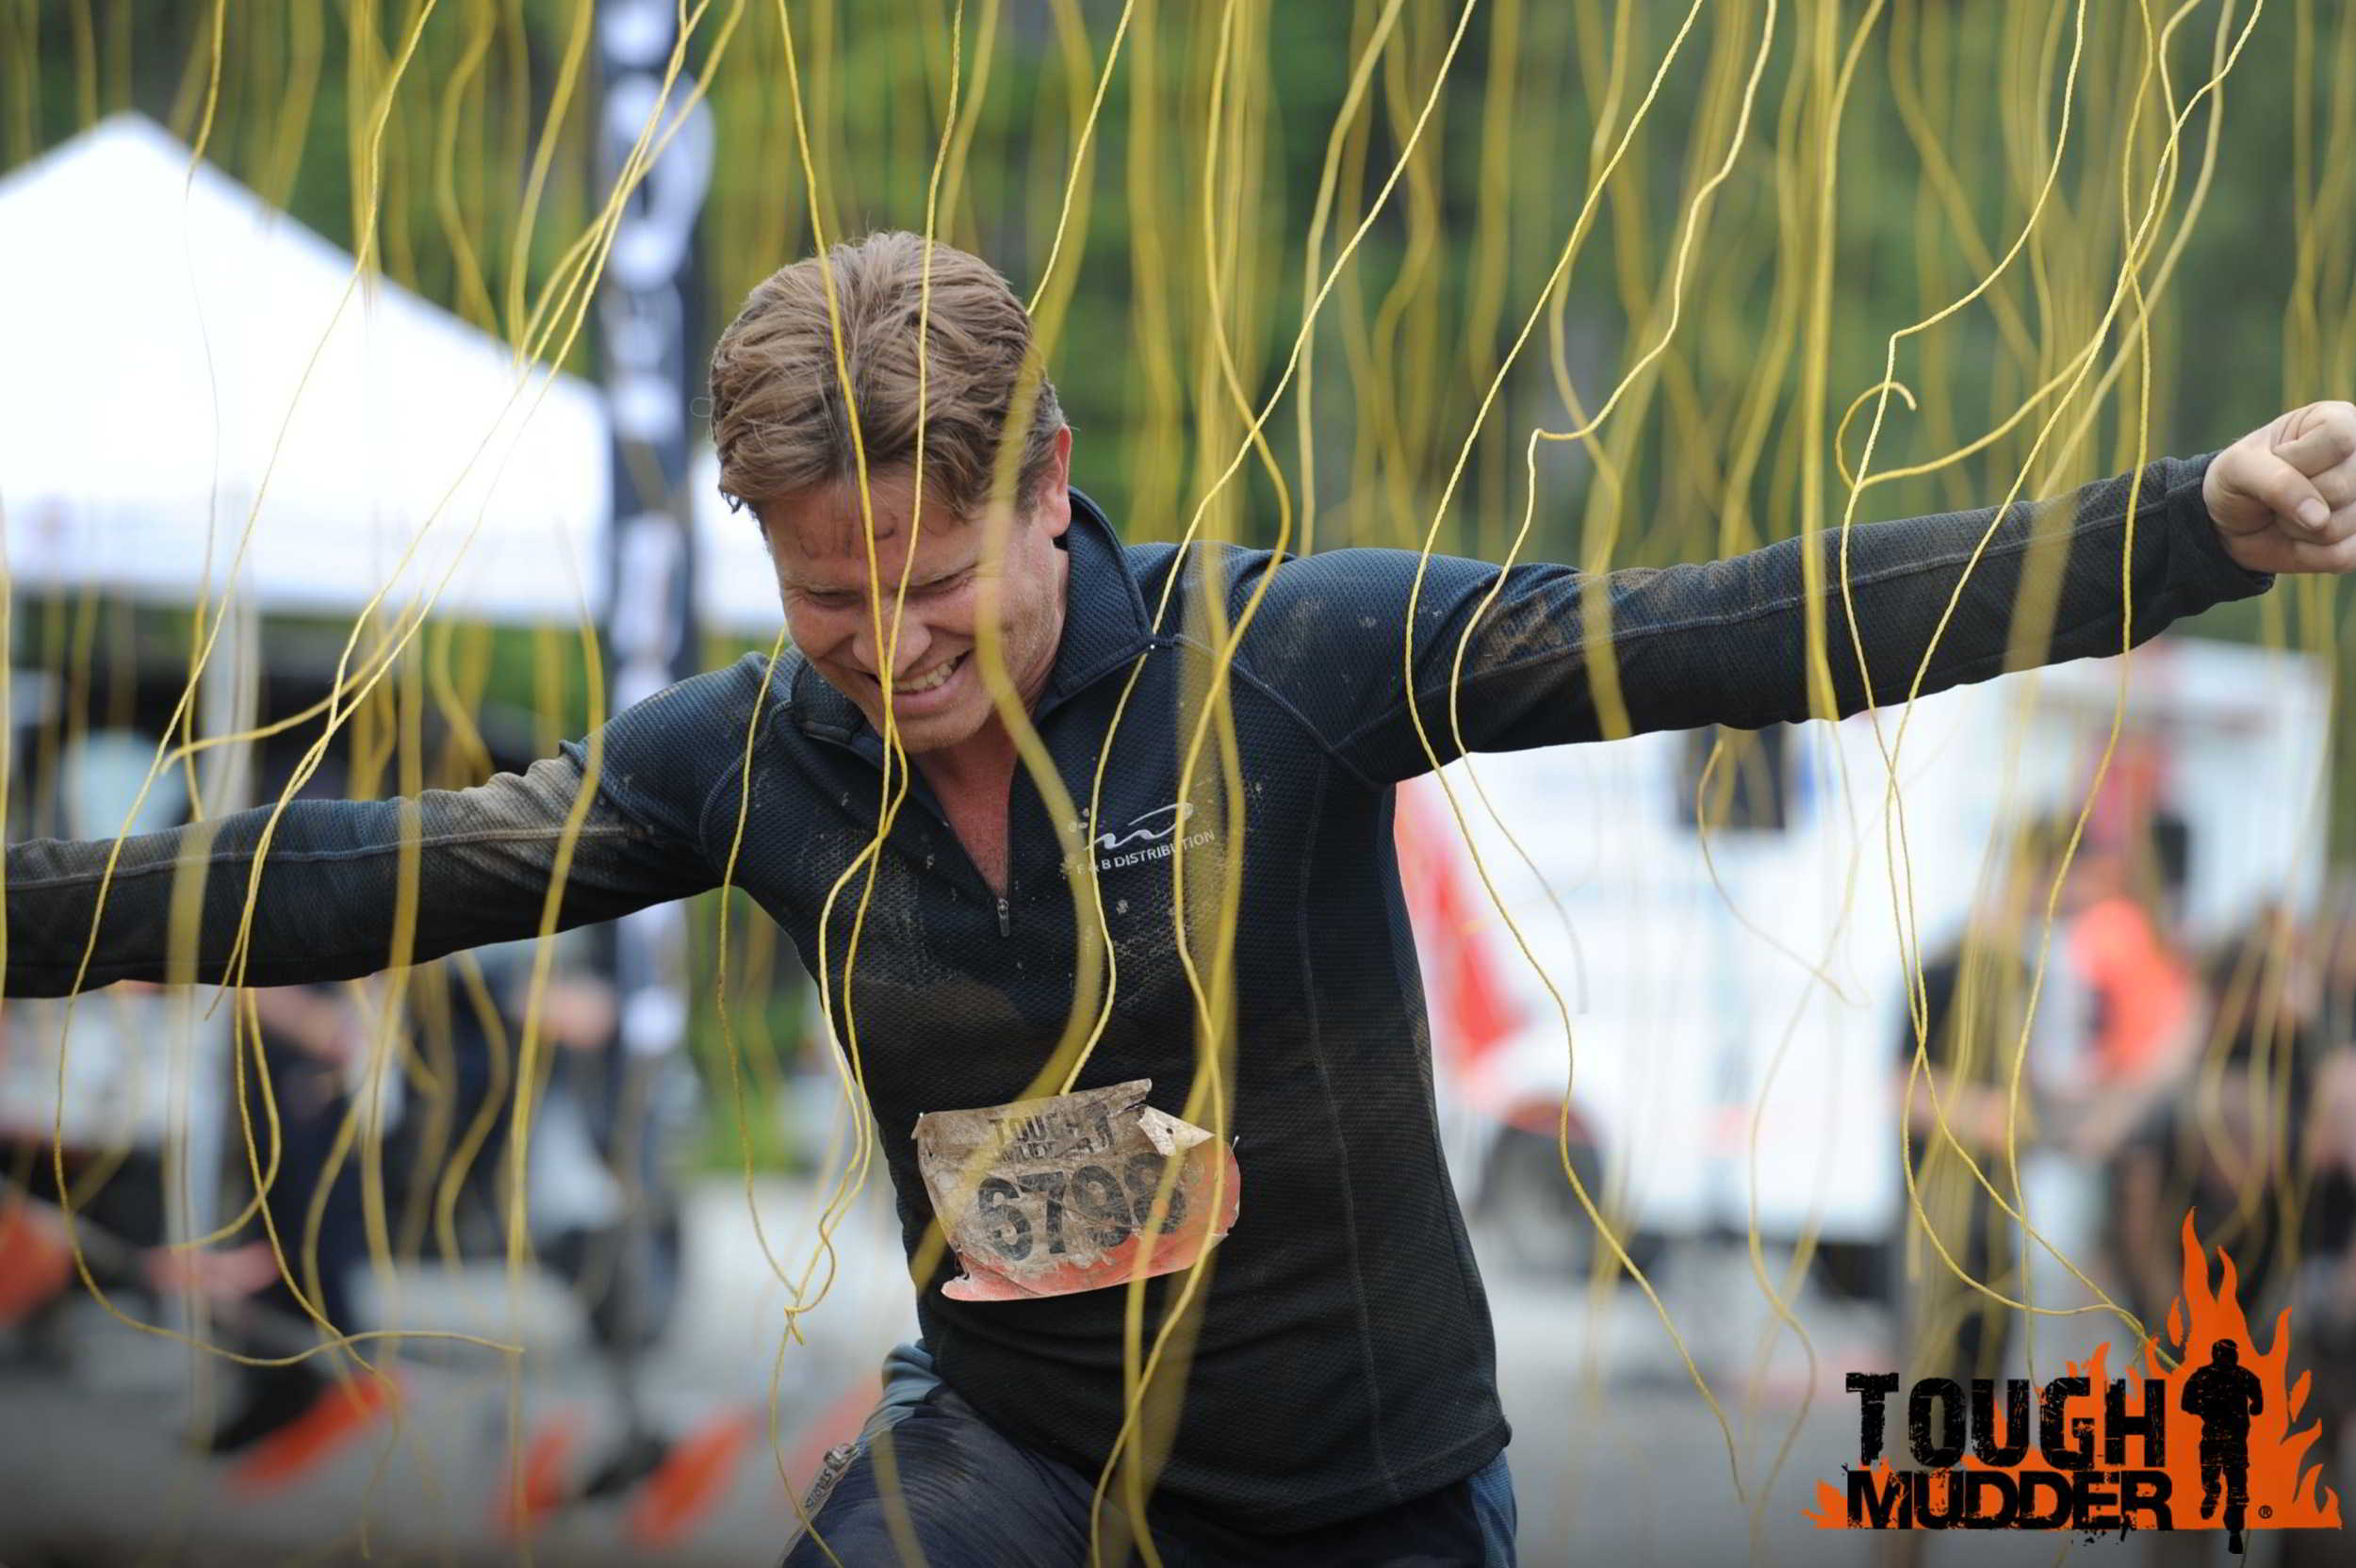 Electroshock Therapy, Tough Mudder, Whistler, British Columbia, Canada